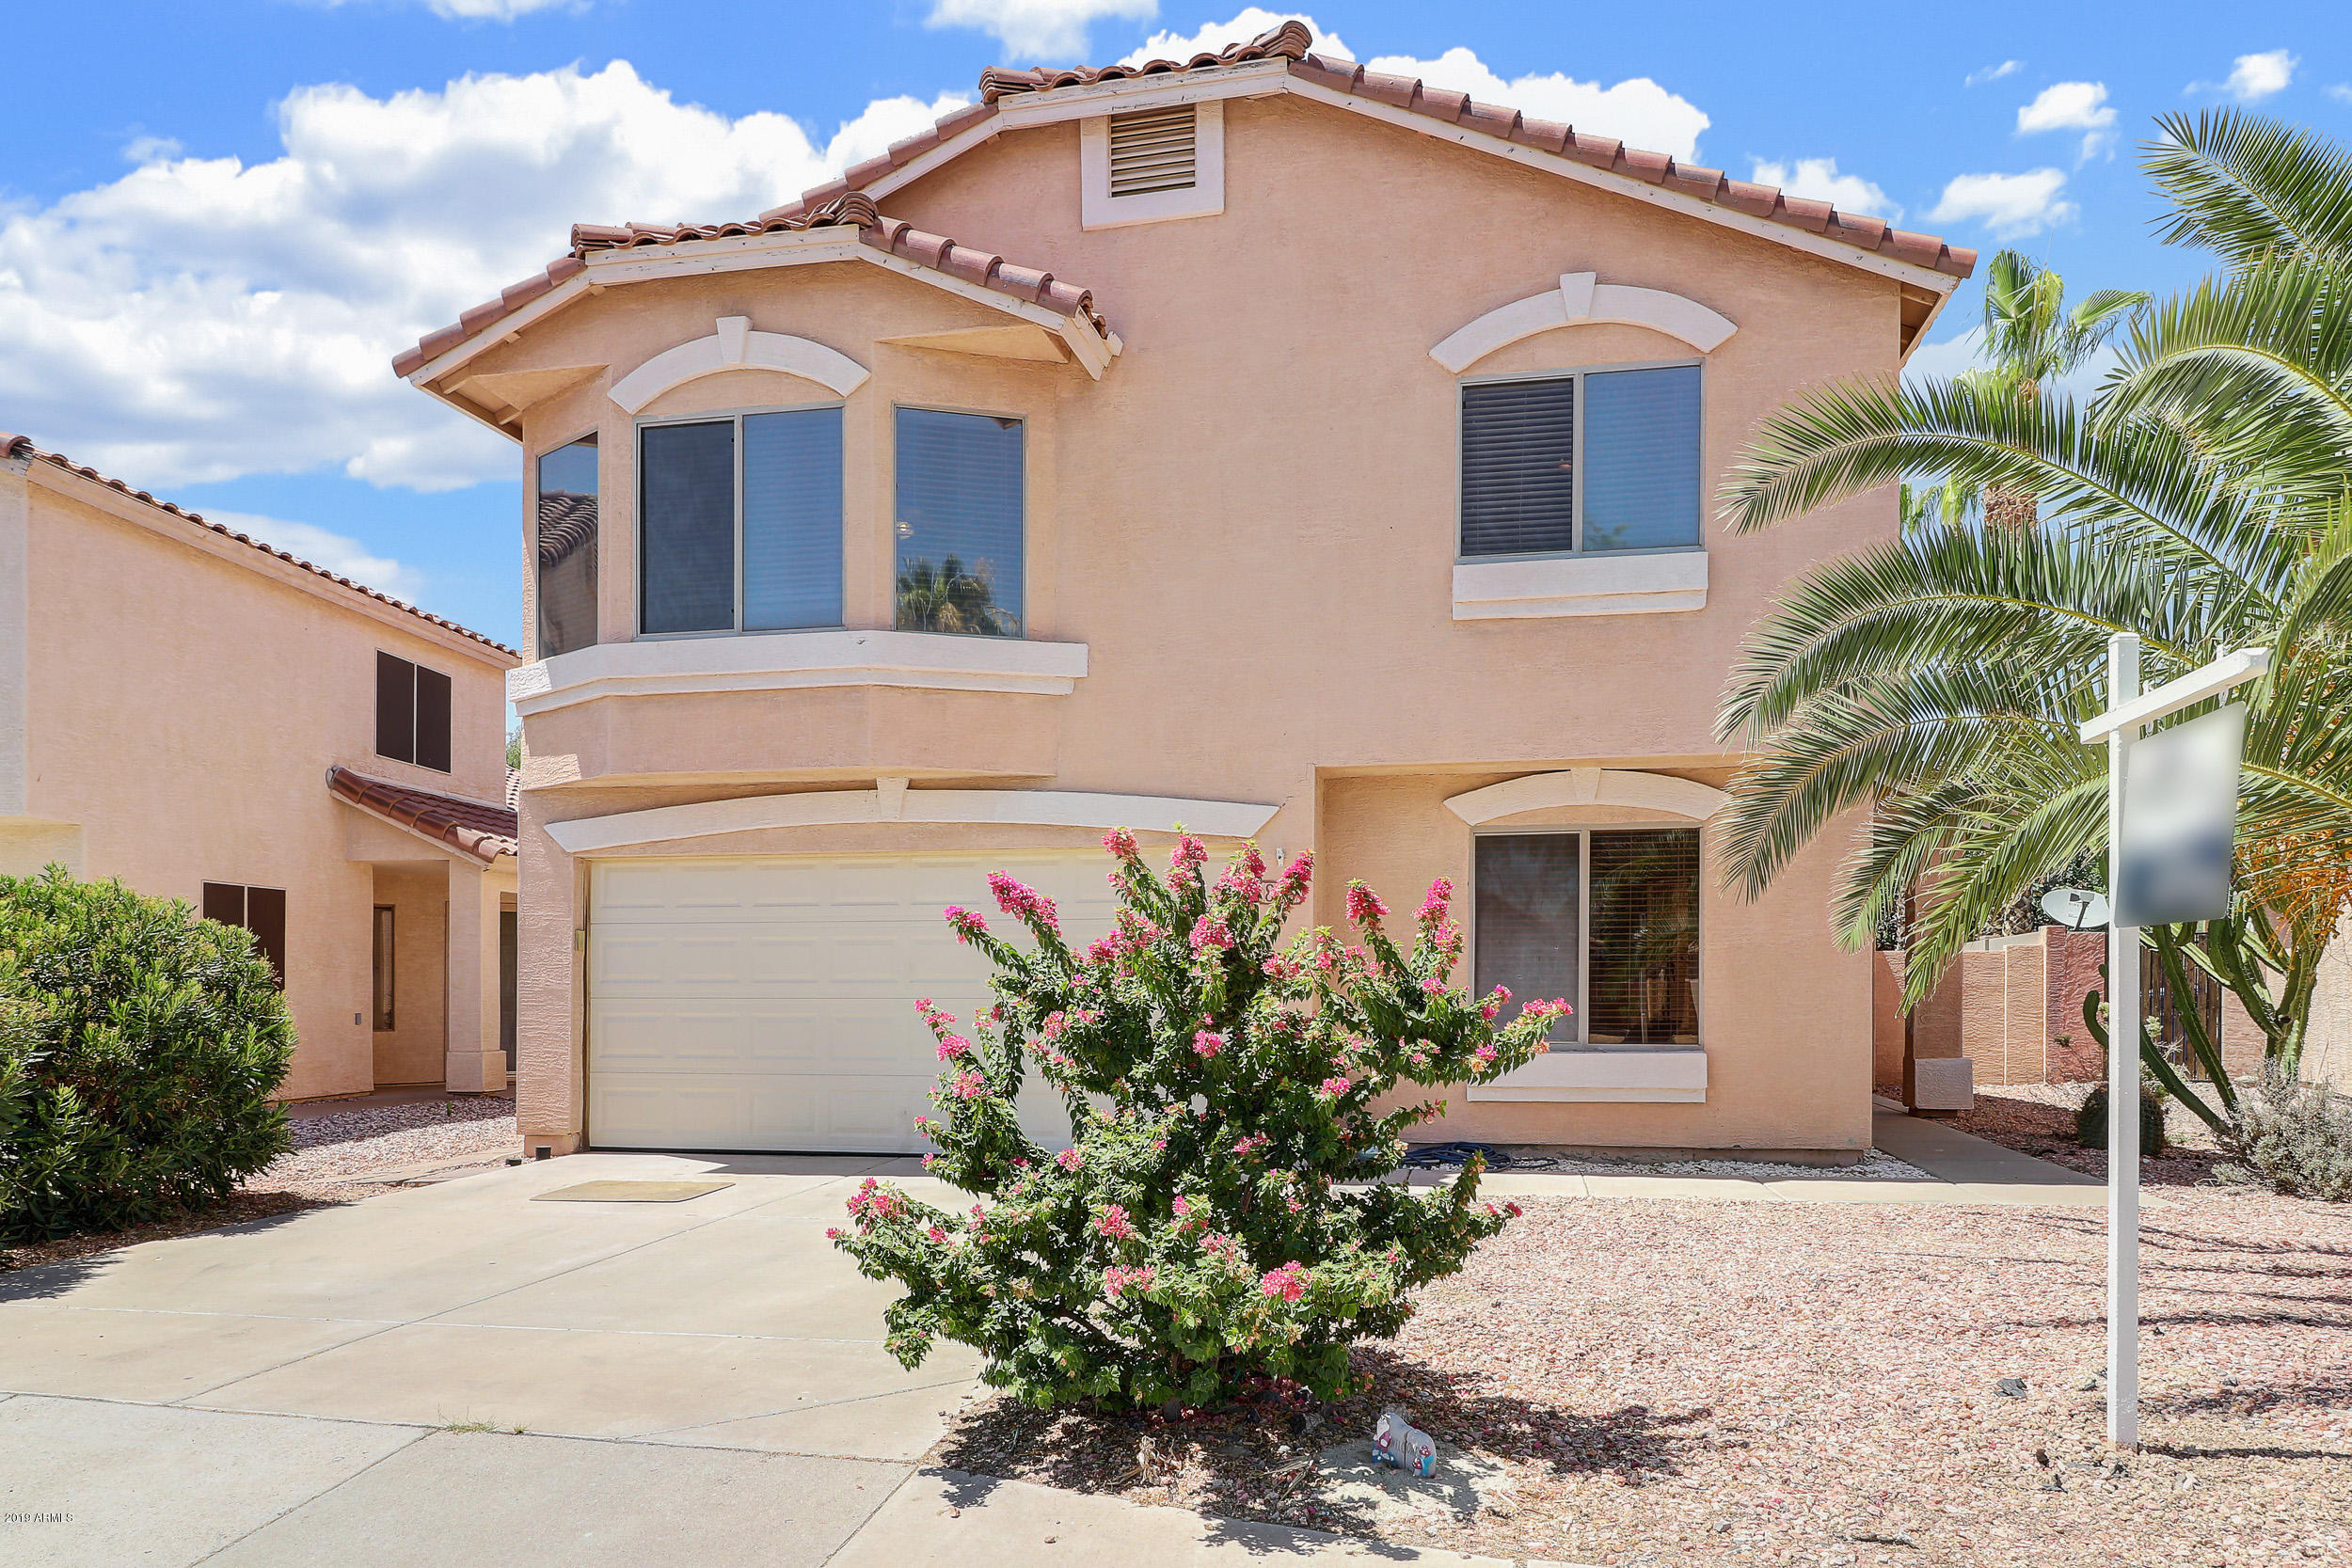 Arroyo Rojo Heights Subdivision in Phoenix AZ Homes for Sale